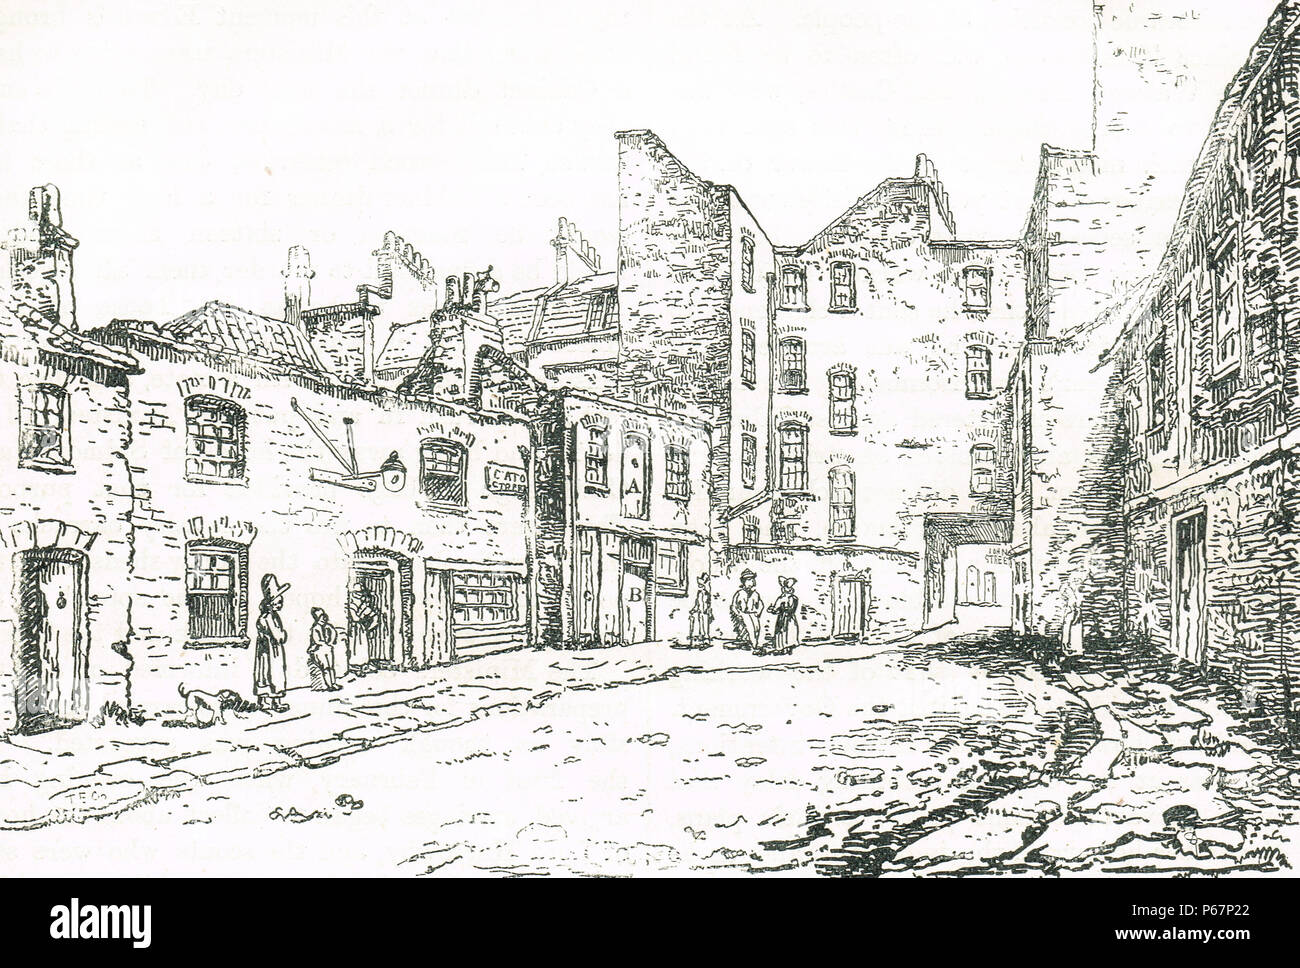 A view of the stable in Cato Street where the Cato St conspirators were arrested.  The Cato Street Conspiracy, an attempt to murder Prime Minister Lord Liverpool, and all the British cabinet in 1820 - Stock Image